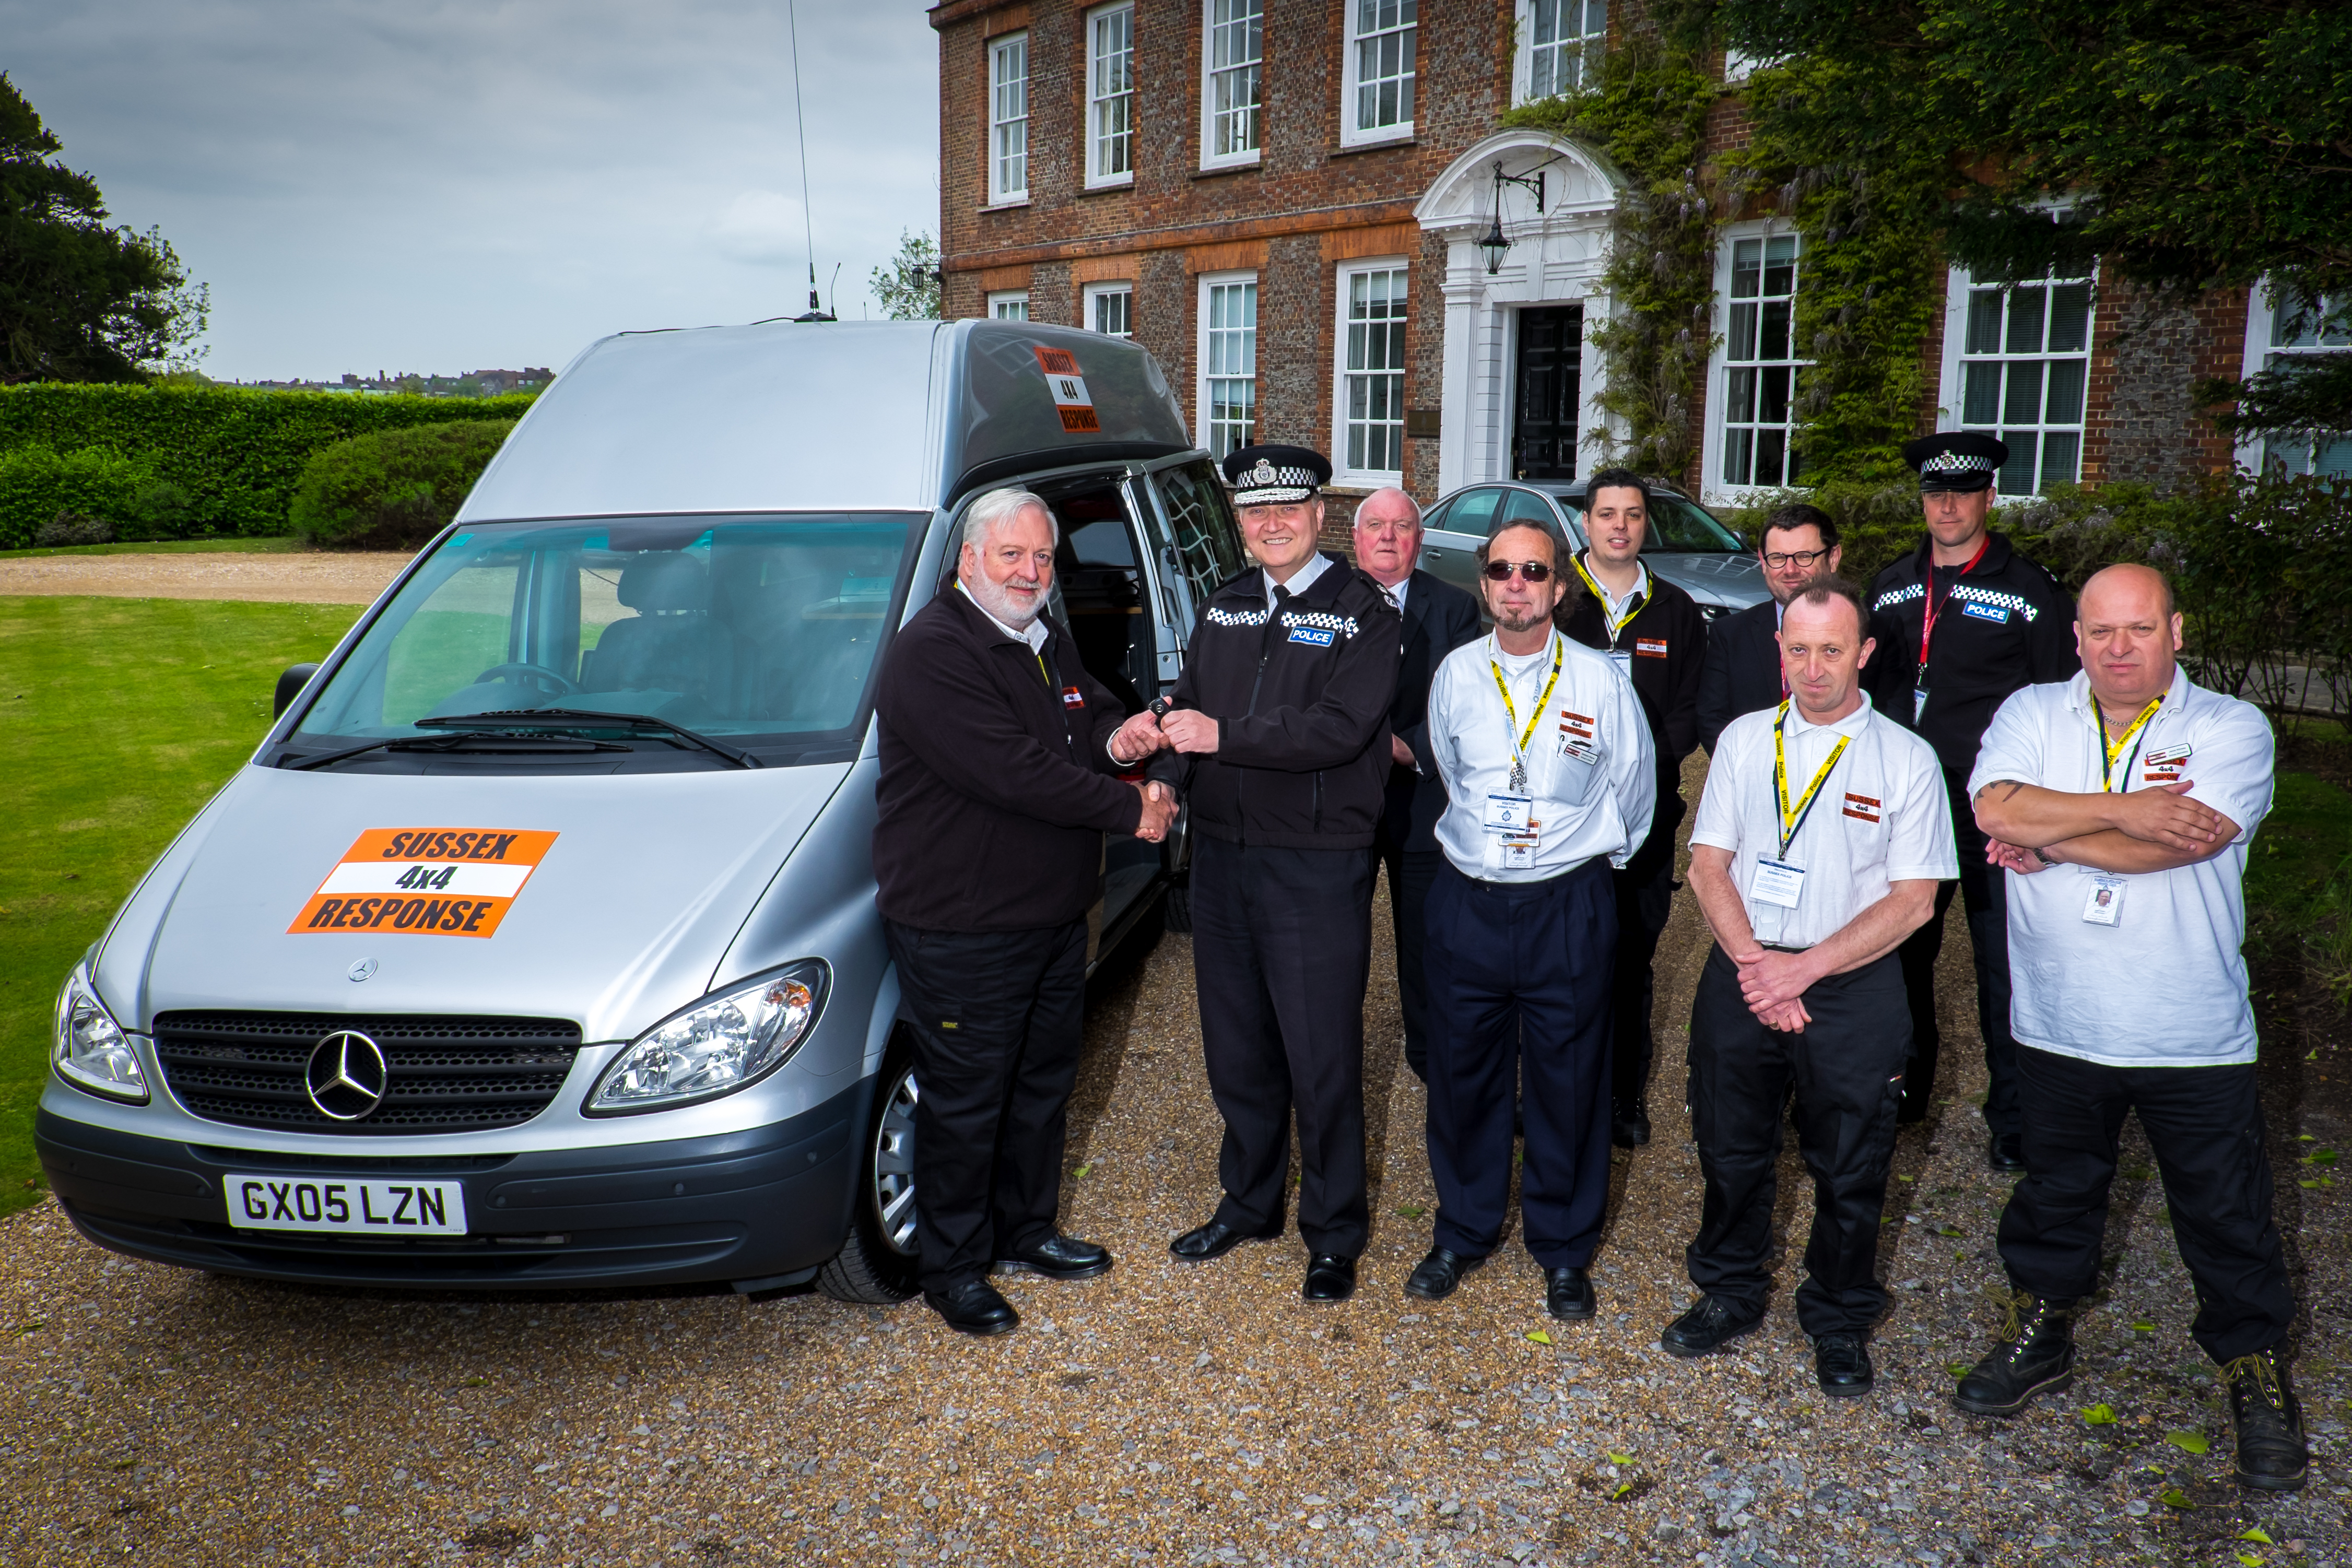 Sussex Police Donation Will Help 'Command' Sussex 4×4 Response